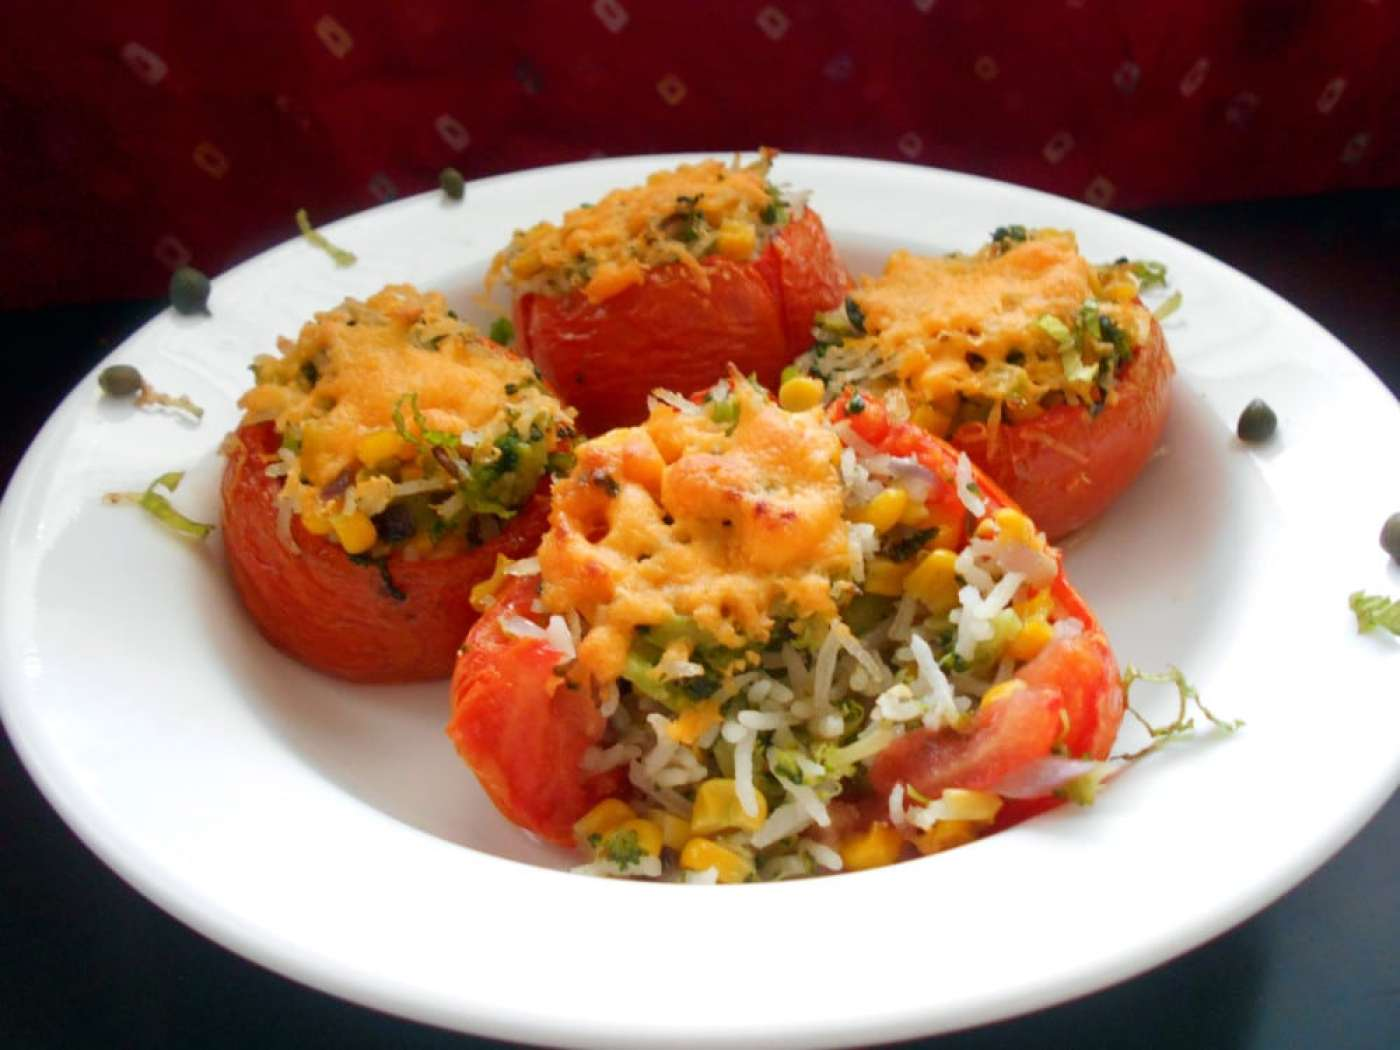 Stuffed Tomatoes - Stuffed with rice, corn and broccoli. Quick dinner time recipe for the whole family